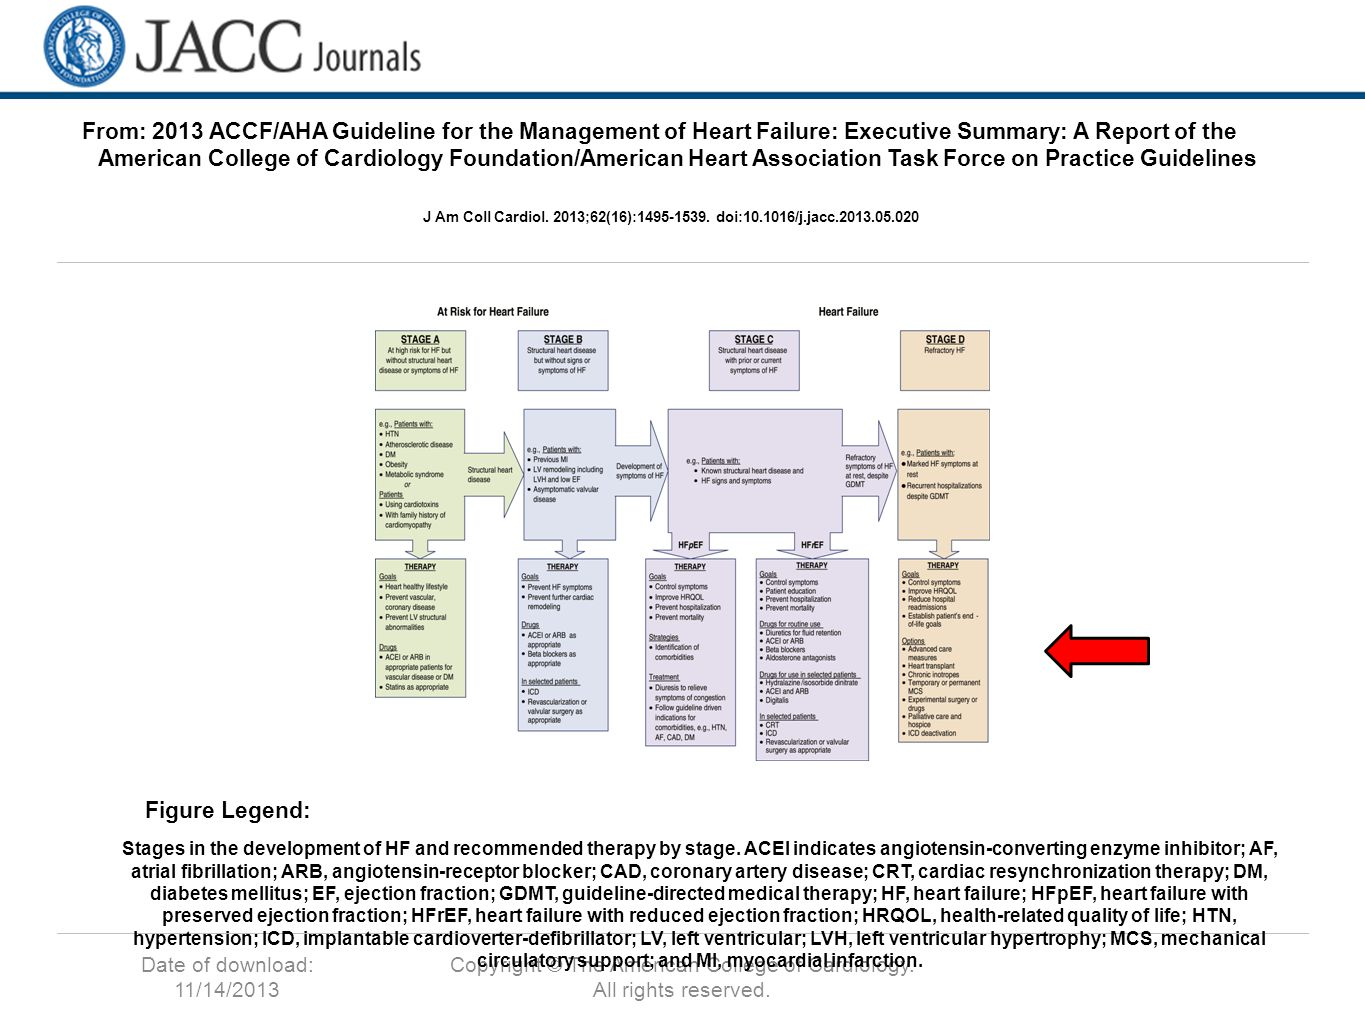 Date of download: 11/14/2013 Copyright © The American College of Cardiology. All rights reserved. From: 2013 ACCF/AHA Guideline for the Management of